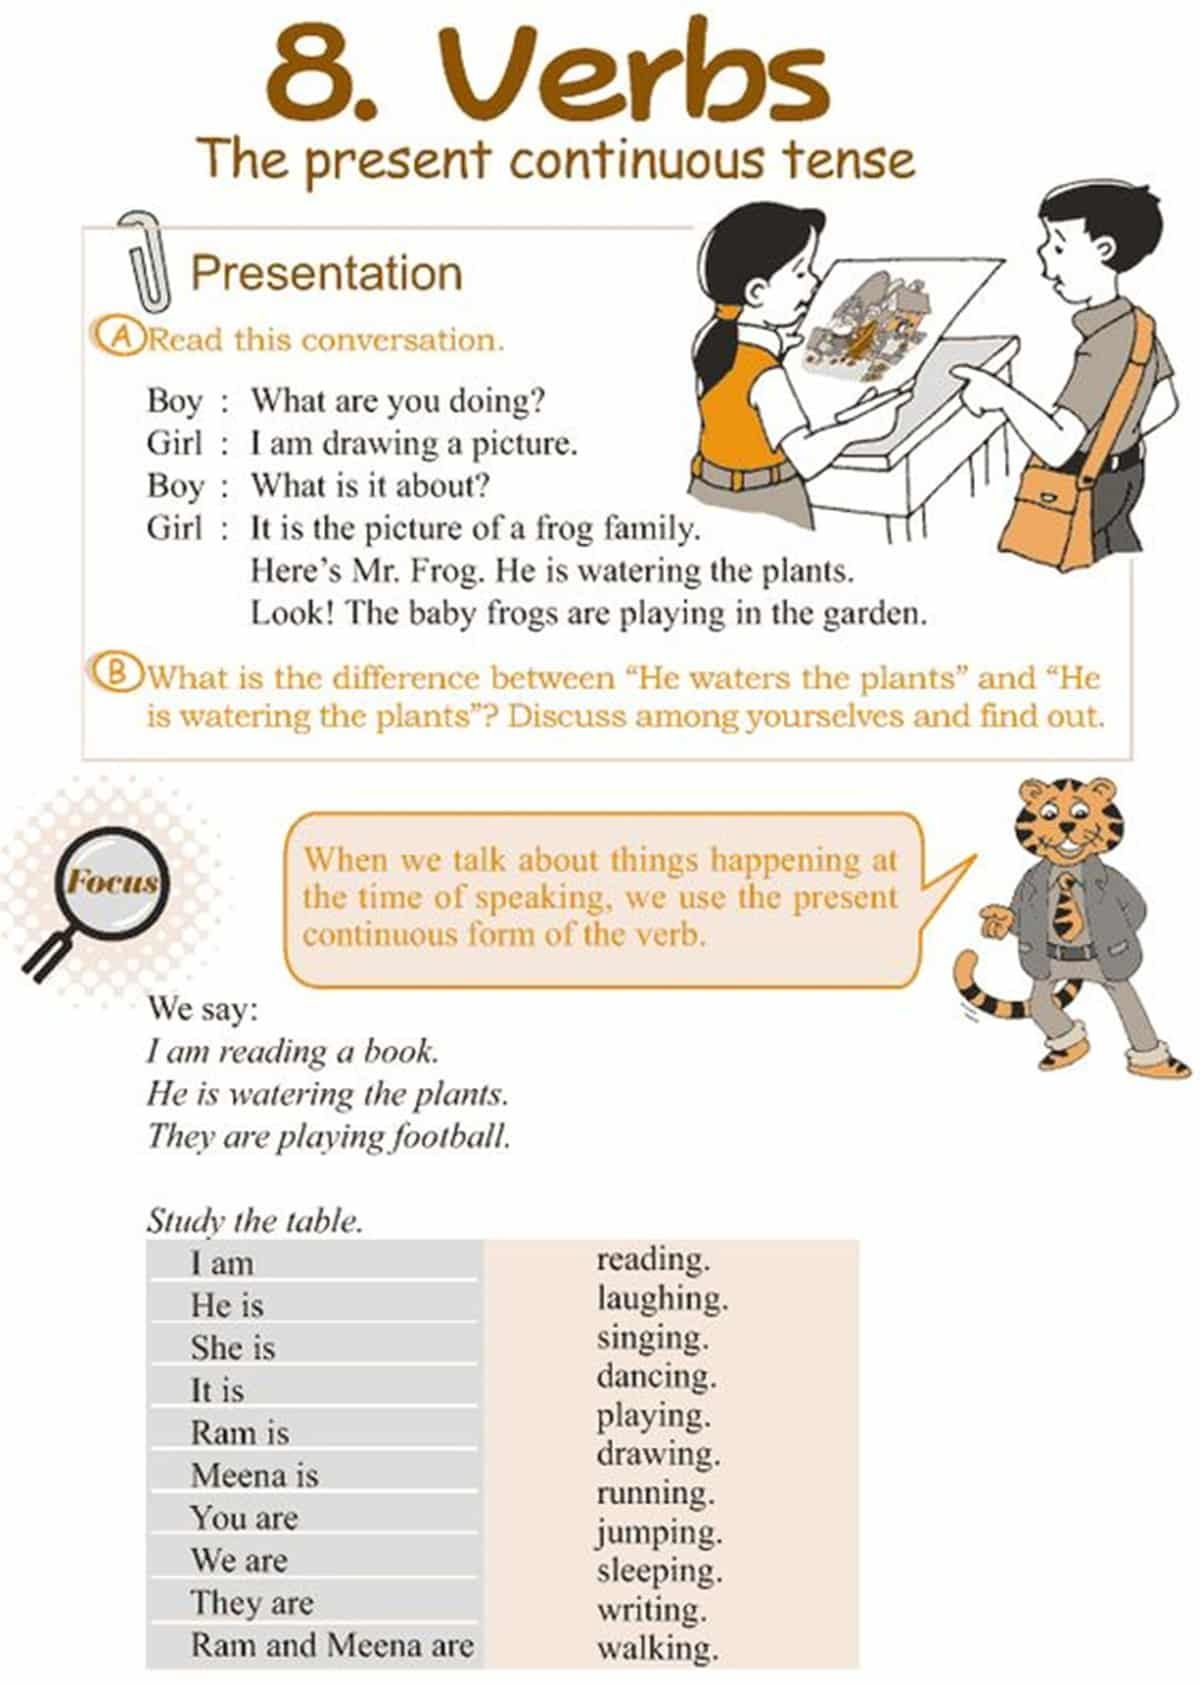 Using The Present Continuous Tense In English